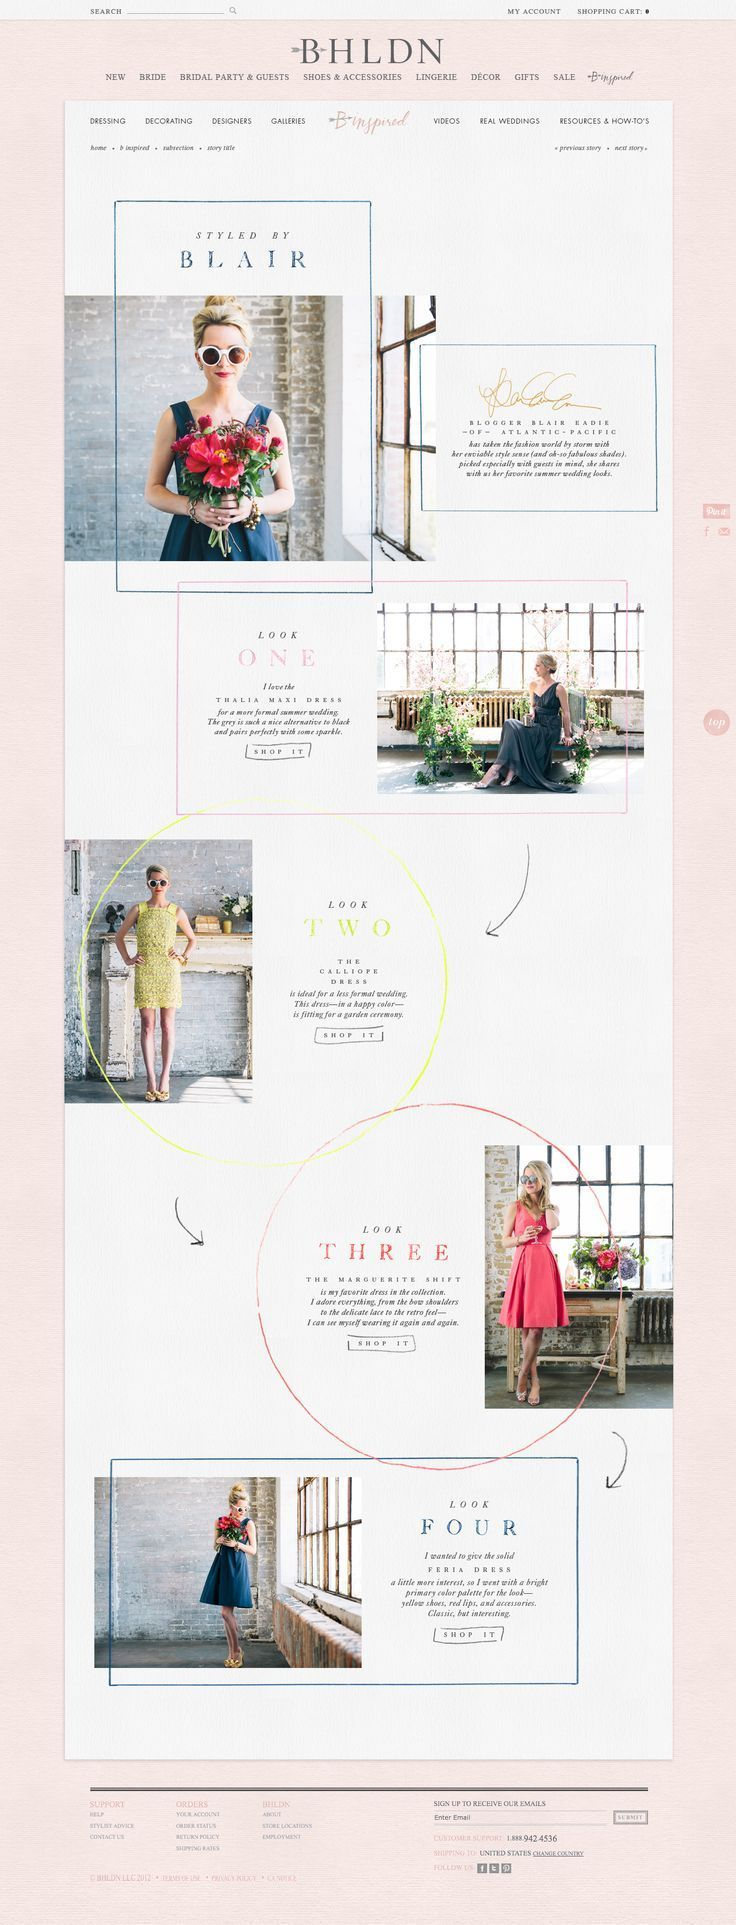 Elysse Ricci Más beautiful and simple feminine website design: http://www.elyssericci.com/